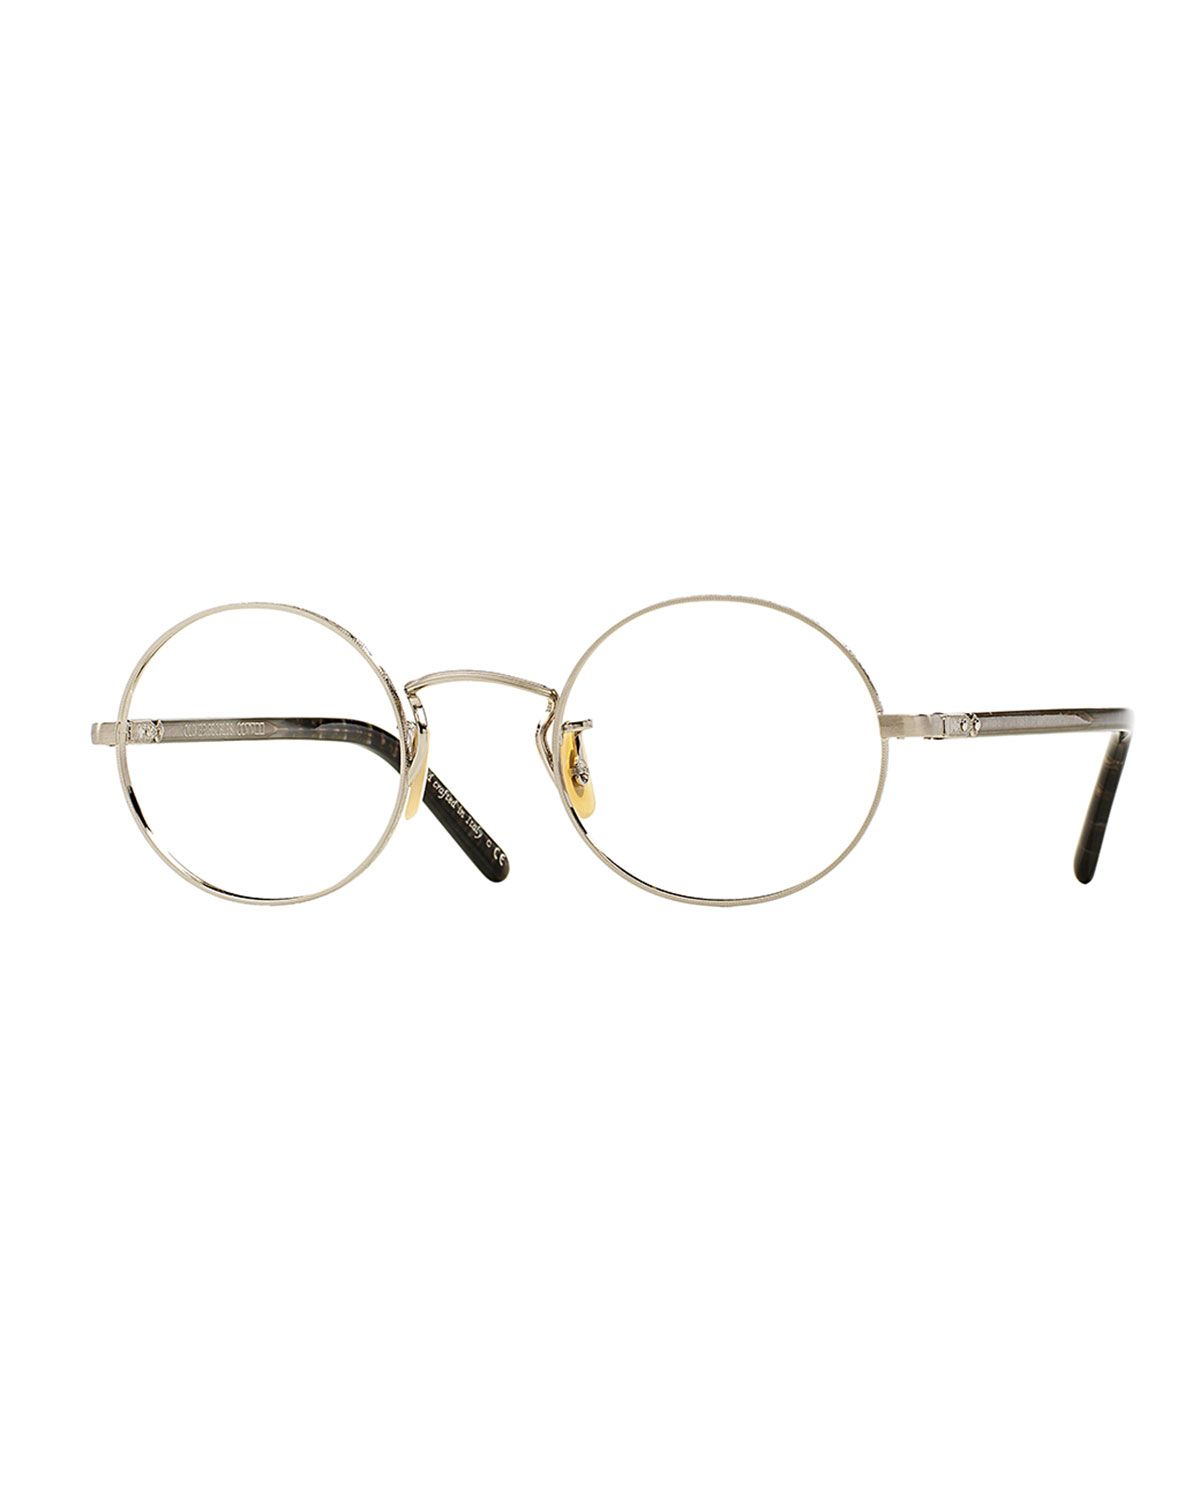 Overstreet 46 Round Fashion Glasses, Silver - Oliver Peoples